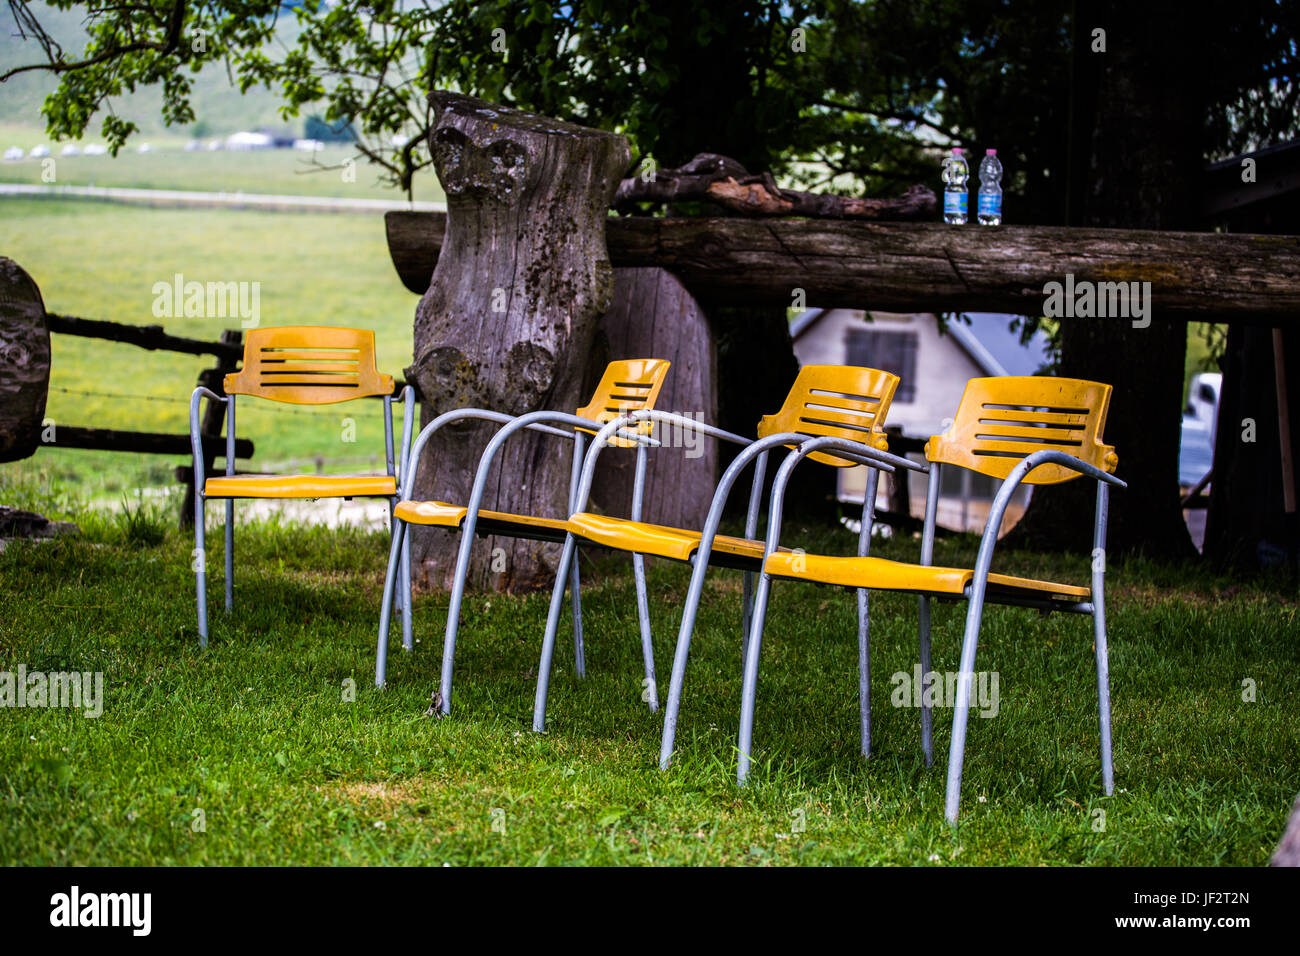 Four yellow chairs standing on grass in a garden near a trunk of a tree. - Stock Image